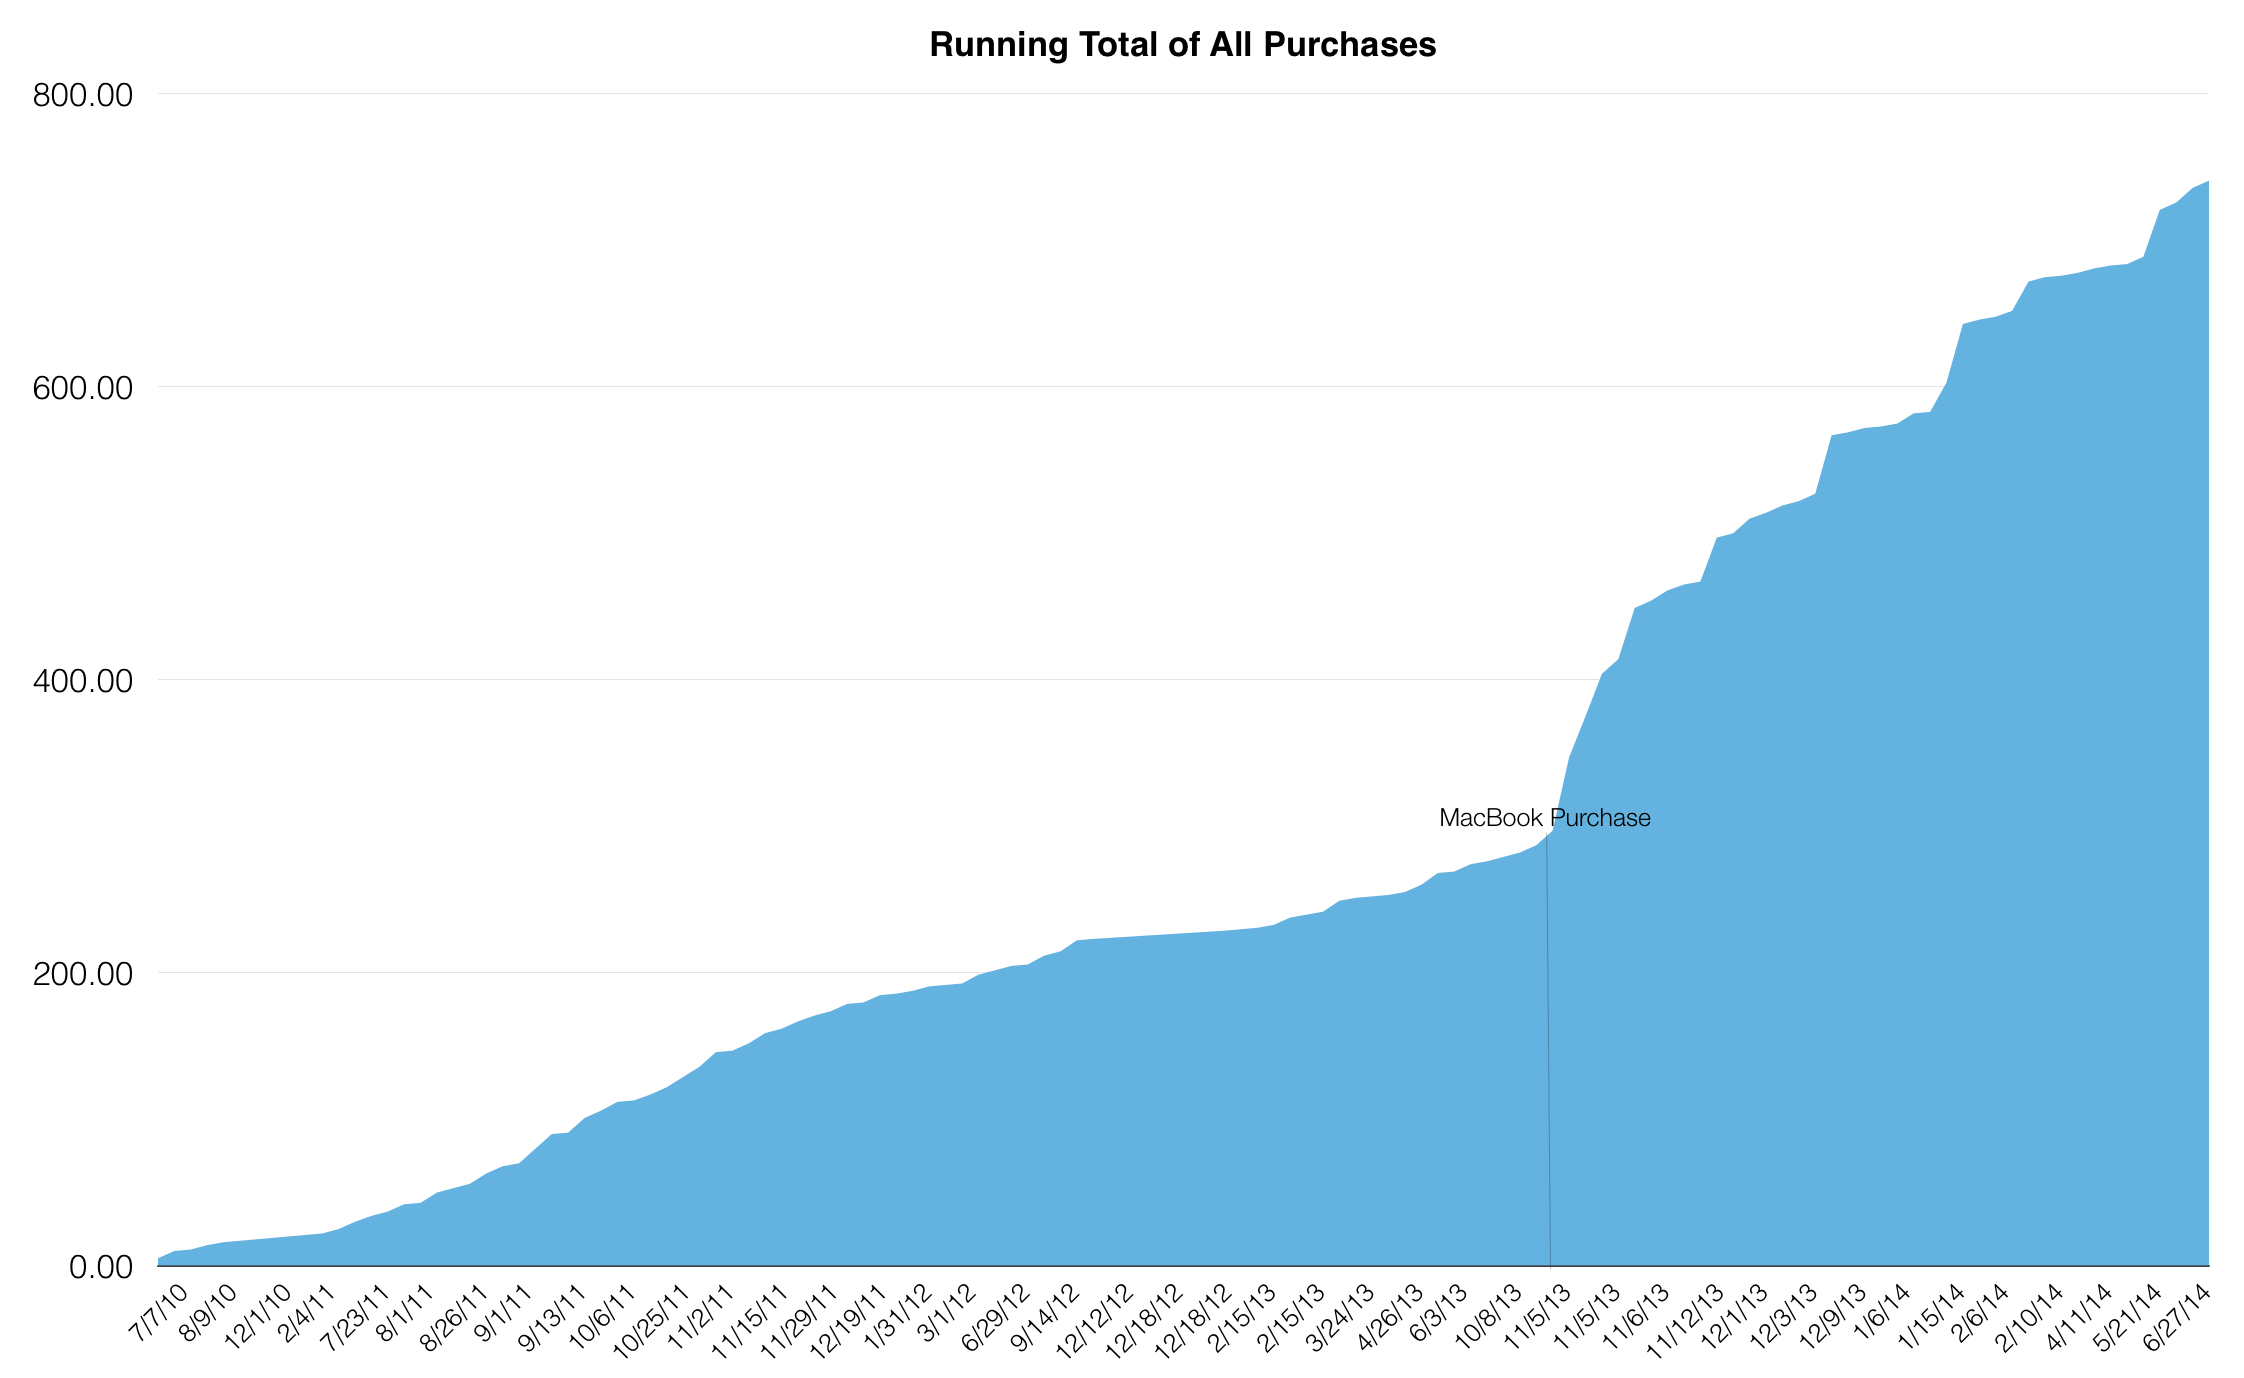 Running Total of All Purchases